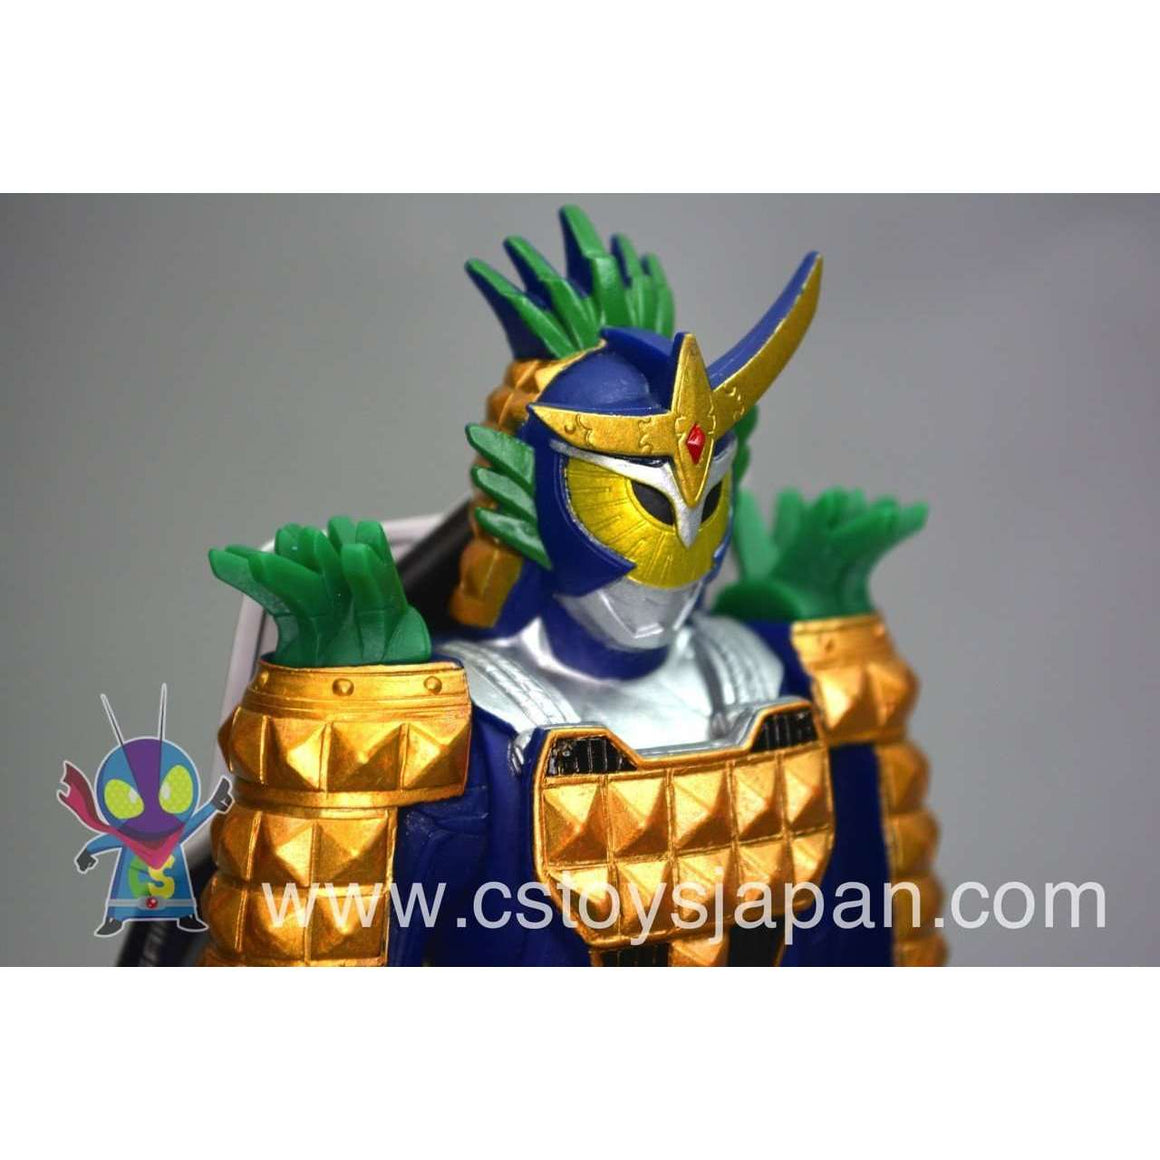 CSTOYS INTERNATIONAL:Kamen Rider Gaim RHS03 Gaim Pine Arms